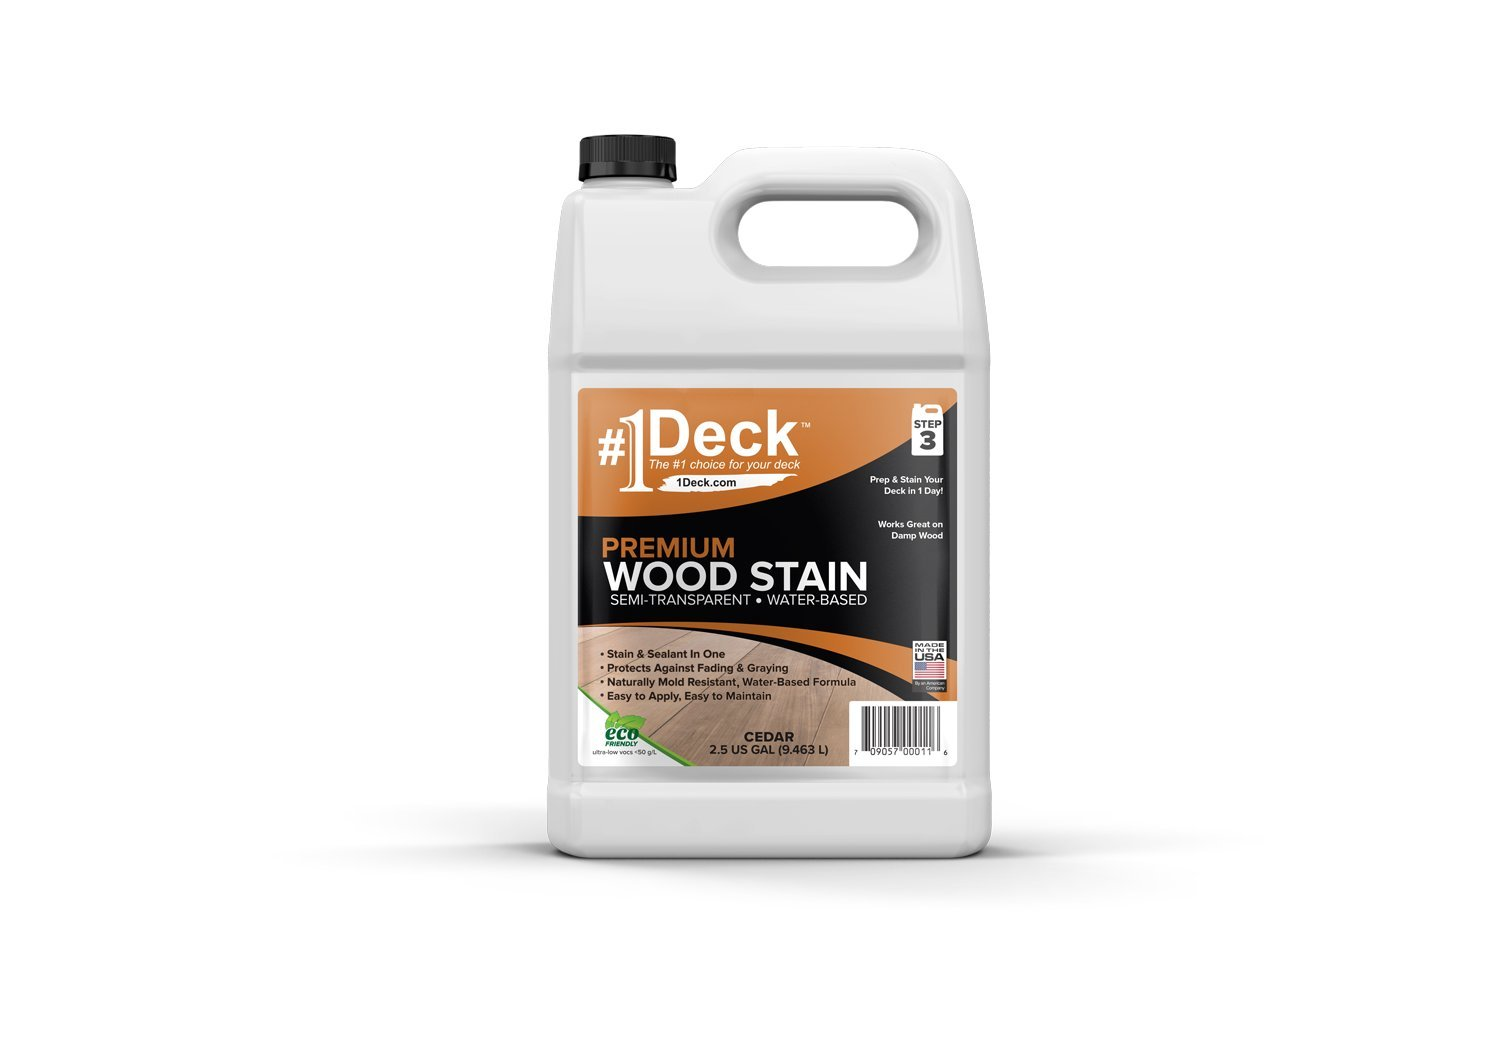 #1 Deck Premium Wood Stain for Decks, Fences, & Siding - 1 Gallon (Dark Walnut) TTJ Enterprises LLC